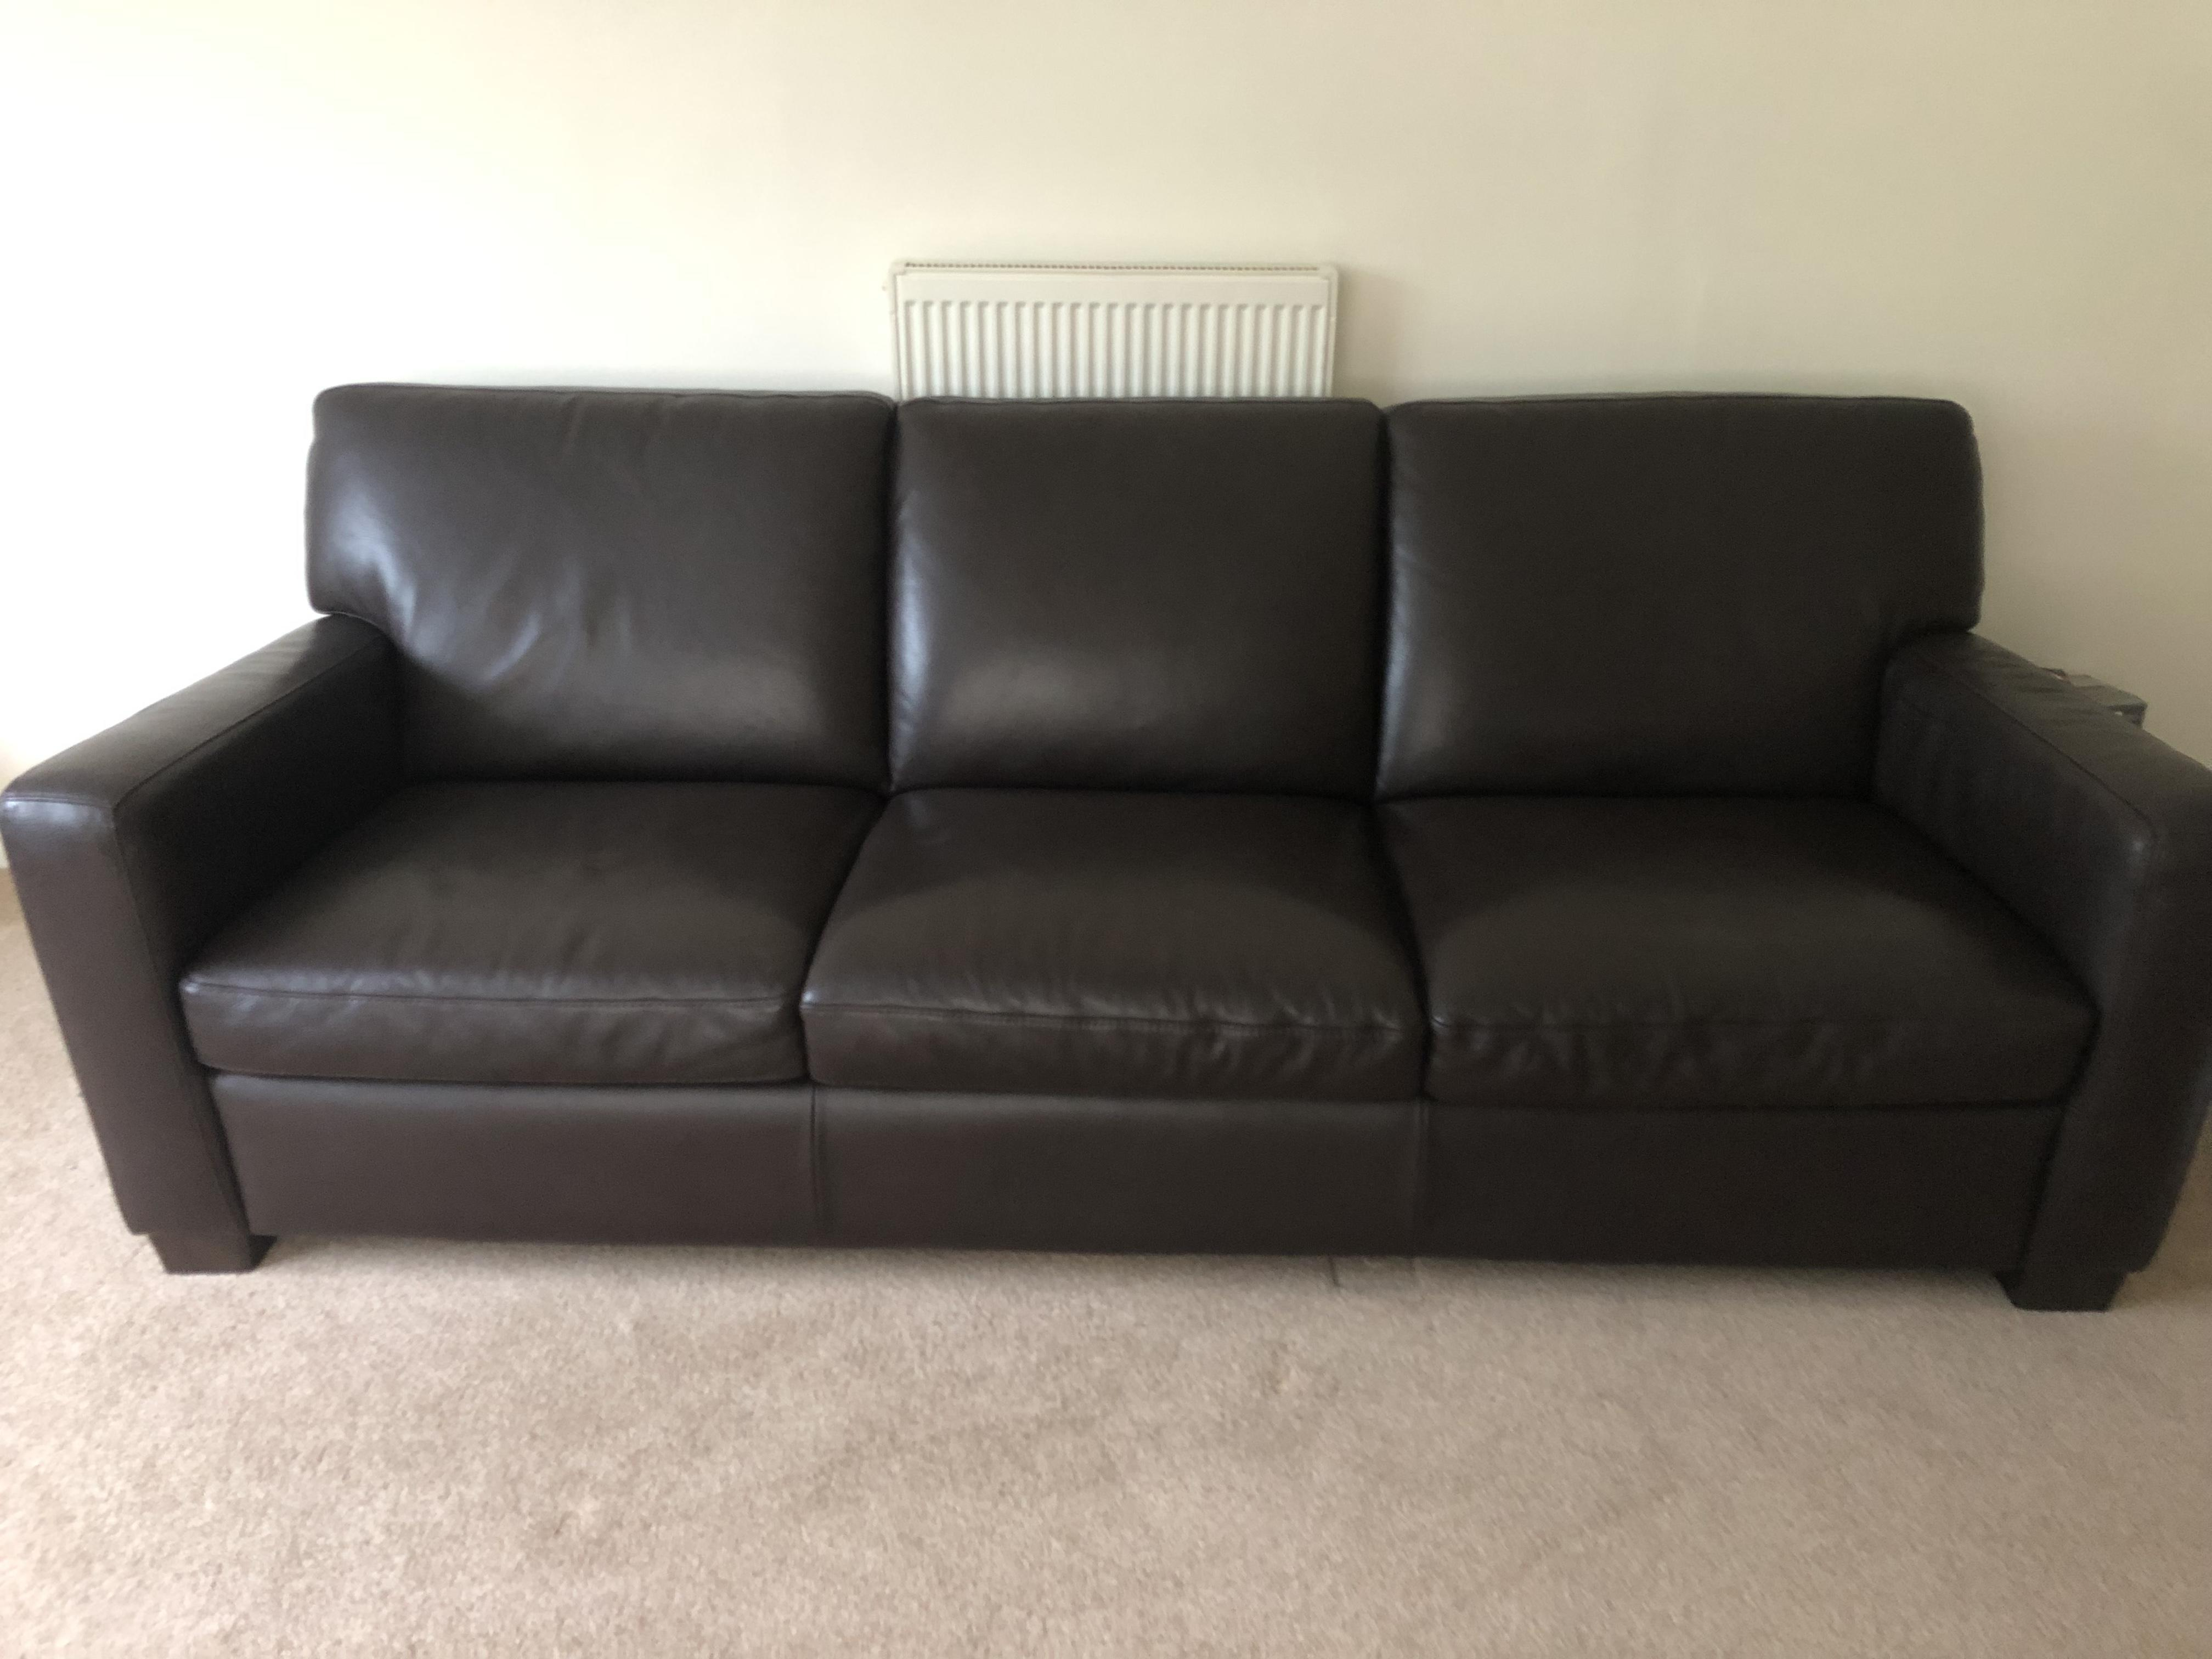 One 3 seater & one 4 seater brown leather sofas for sale in ...